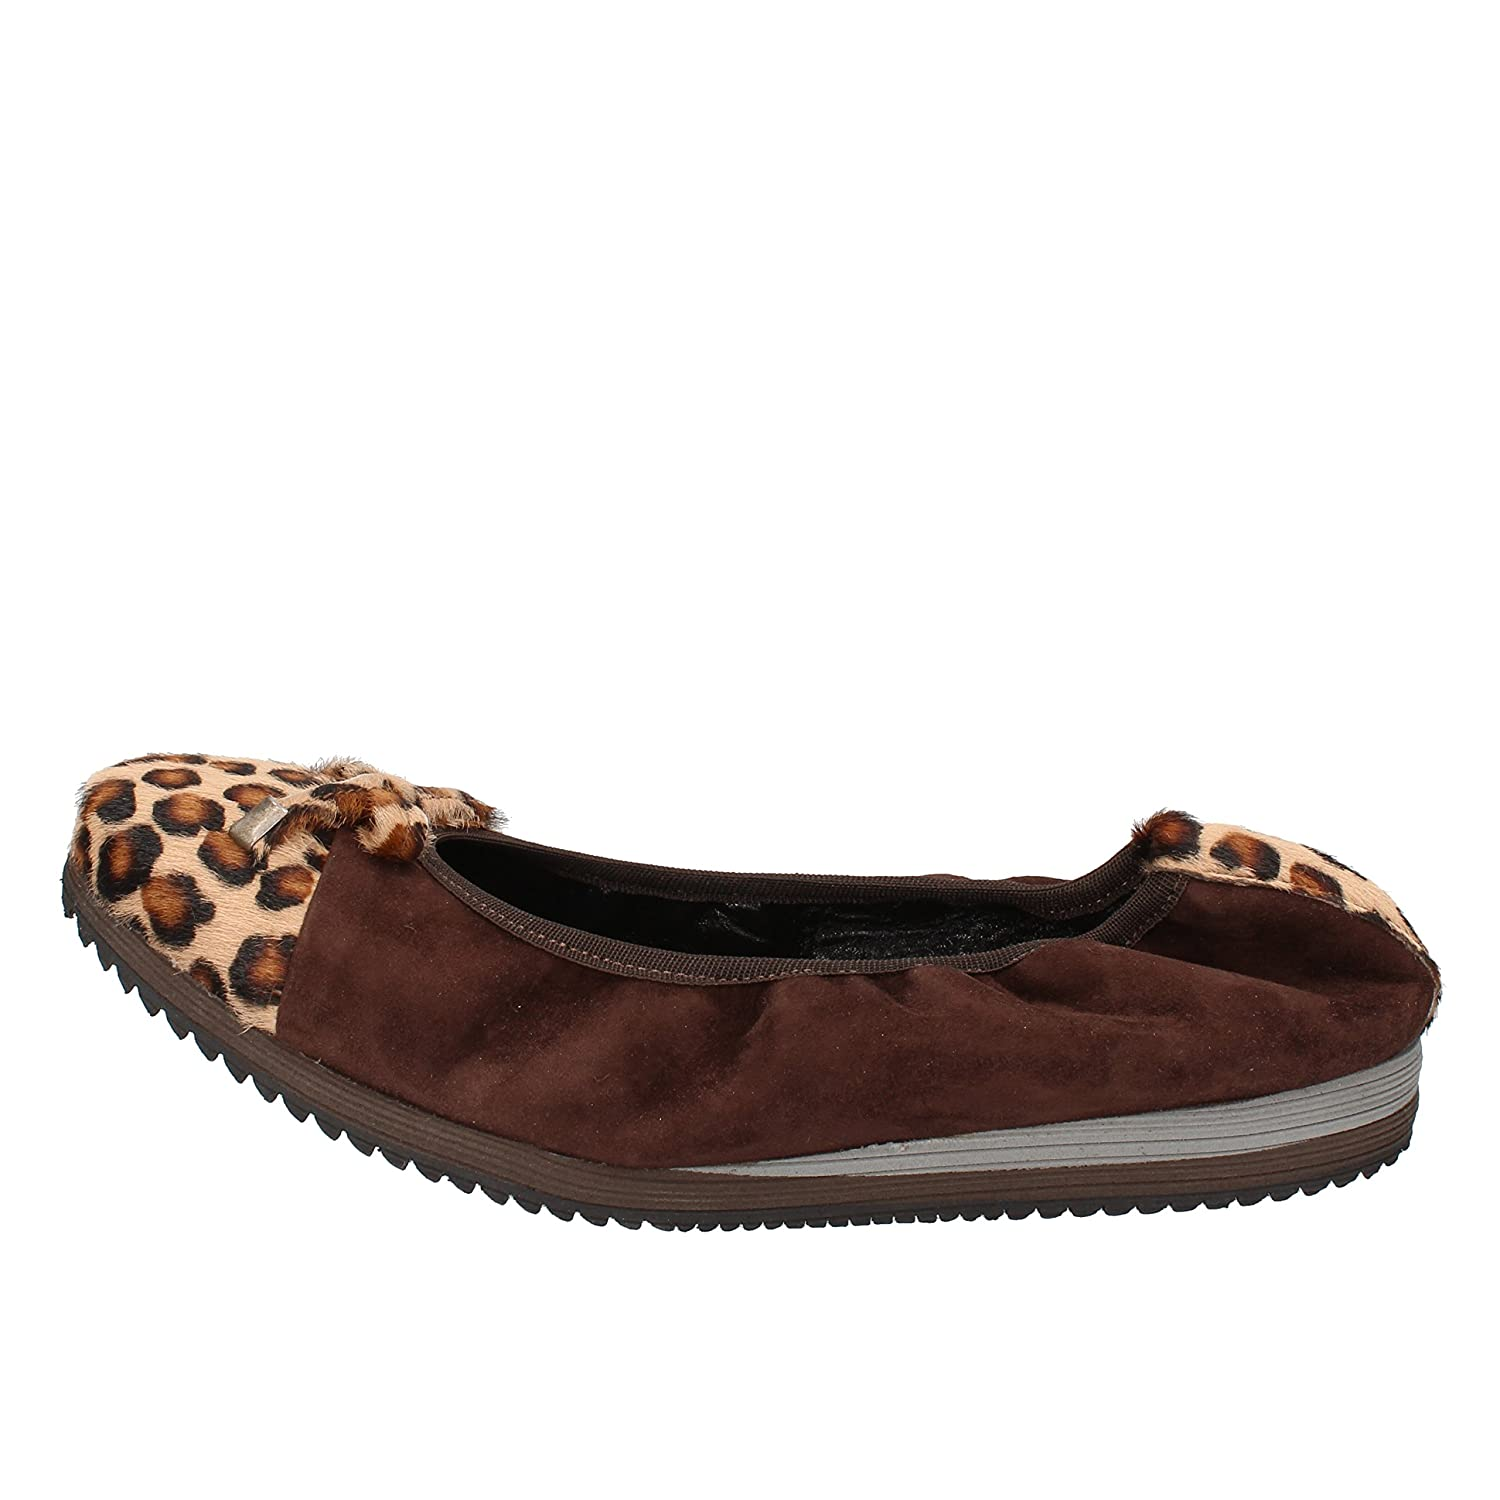 - CALPIERRE Flats-shoes Womens Suede Brown